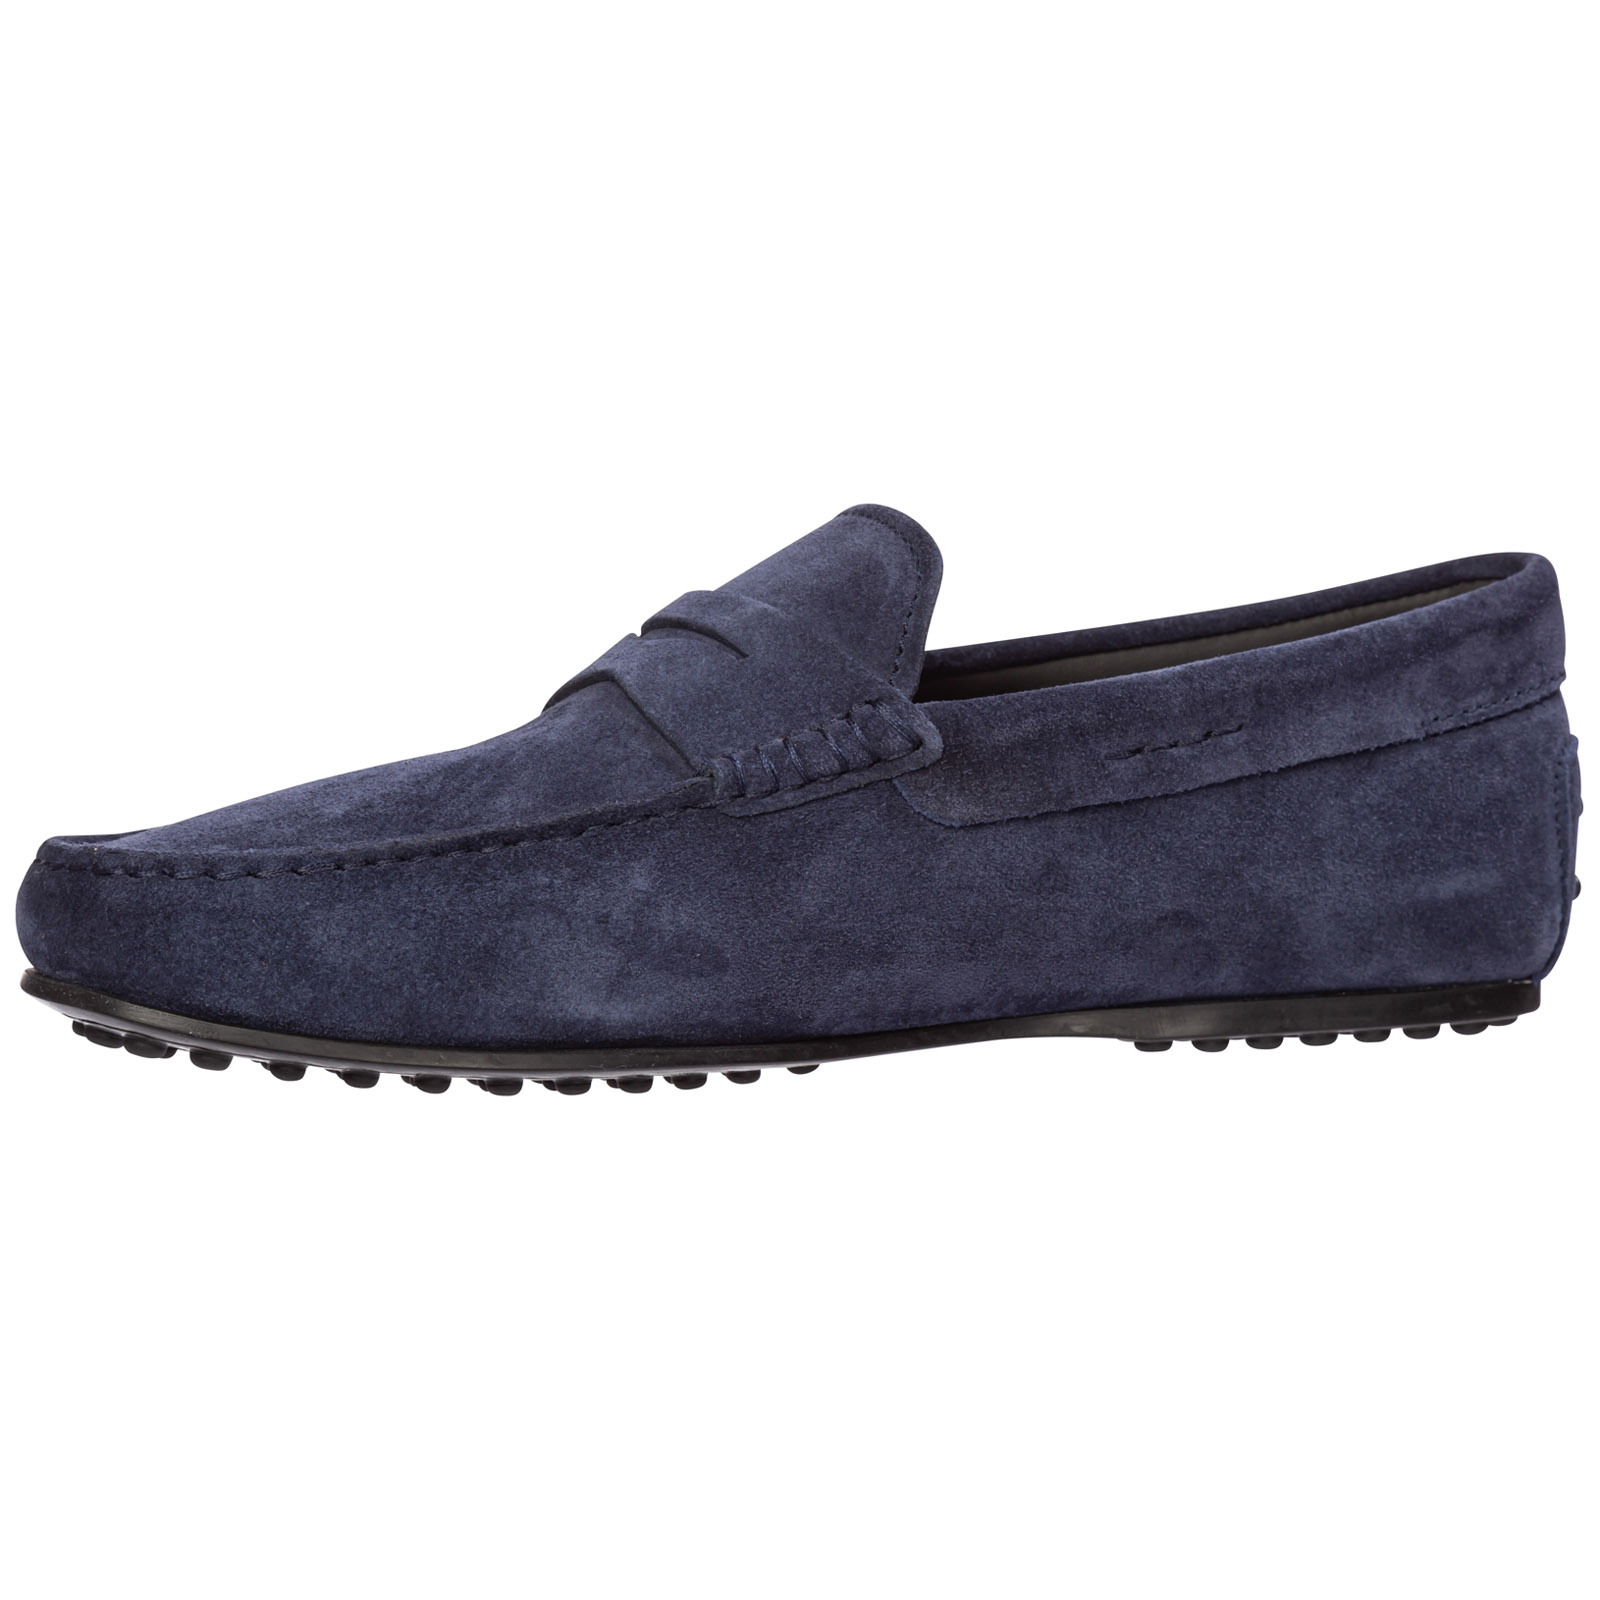 Men's suede loafers moccasins city